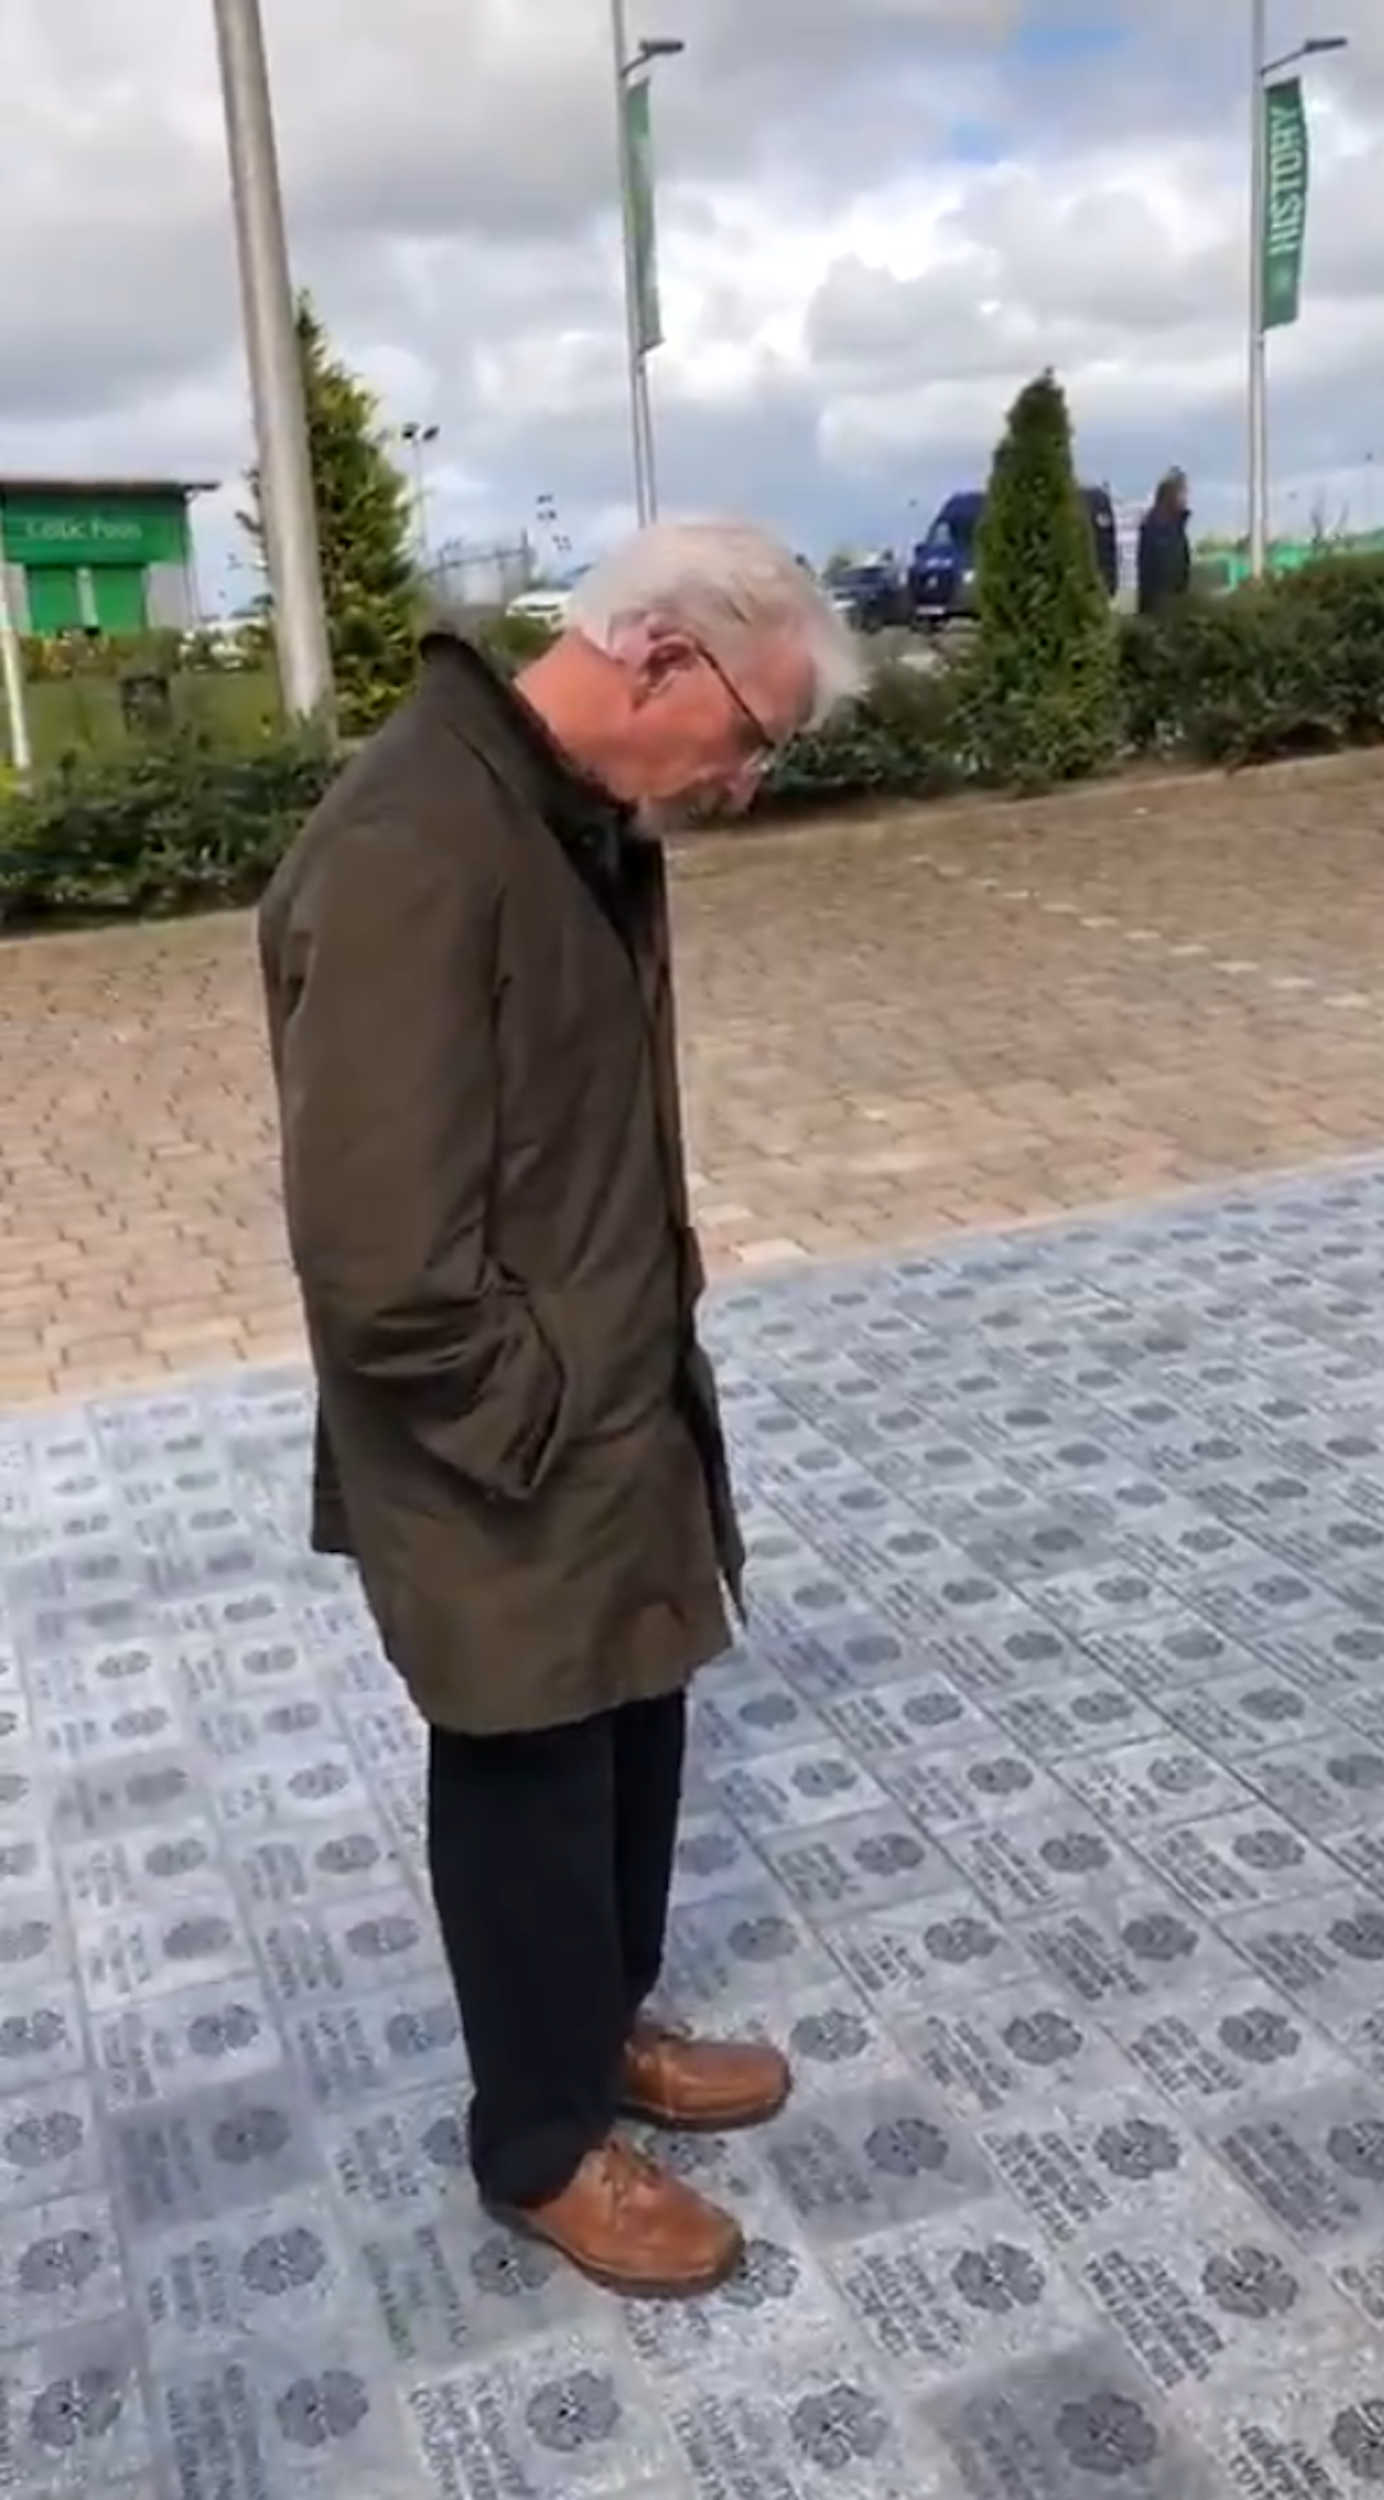 Phillip looking down at his plaque before the emotion overwhelmed him - Scottish News